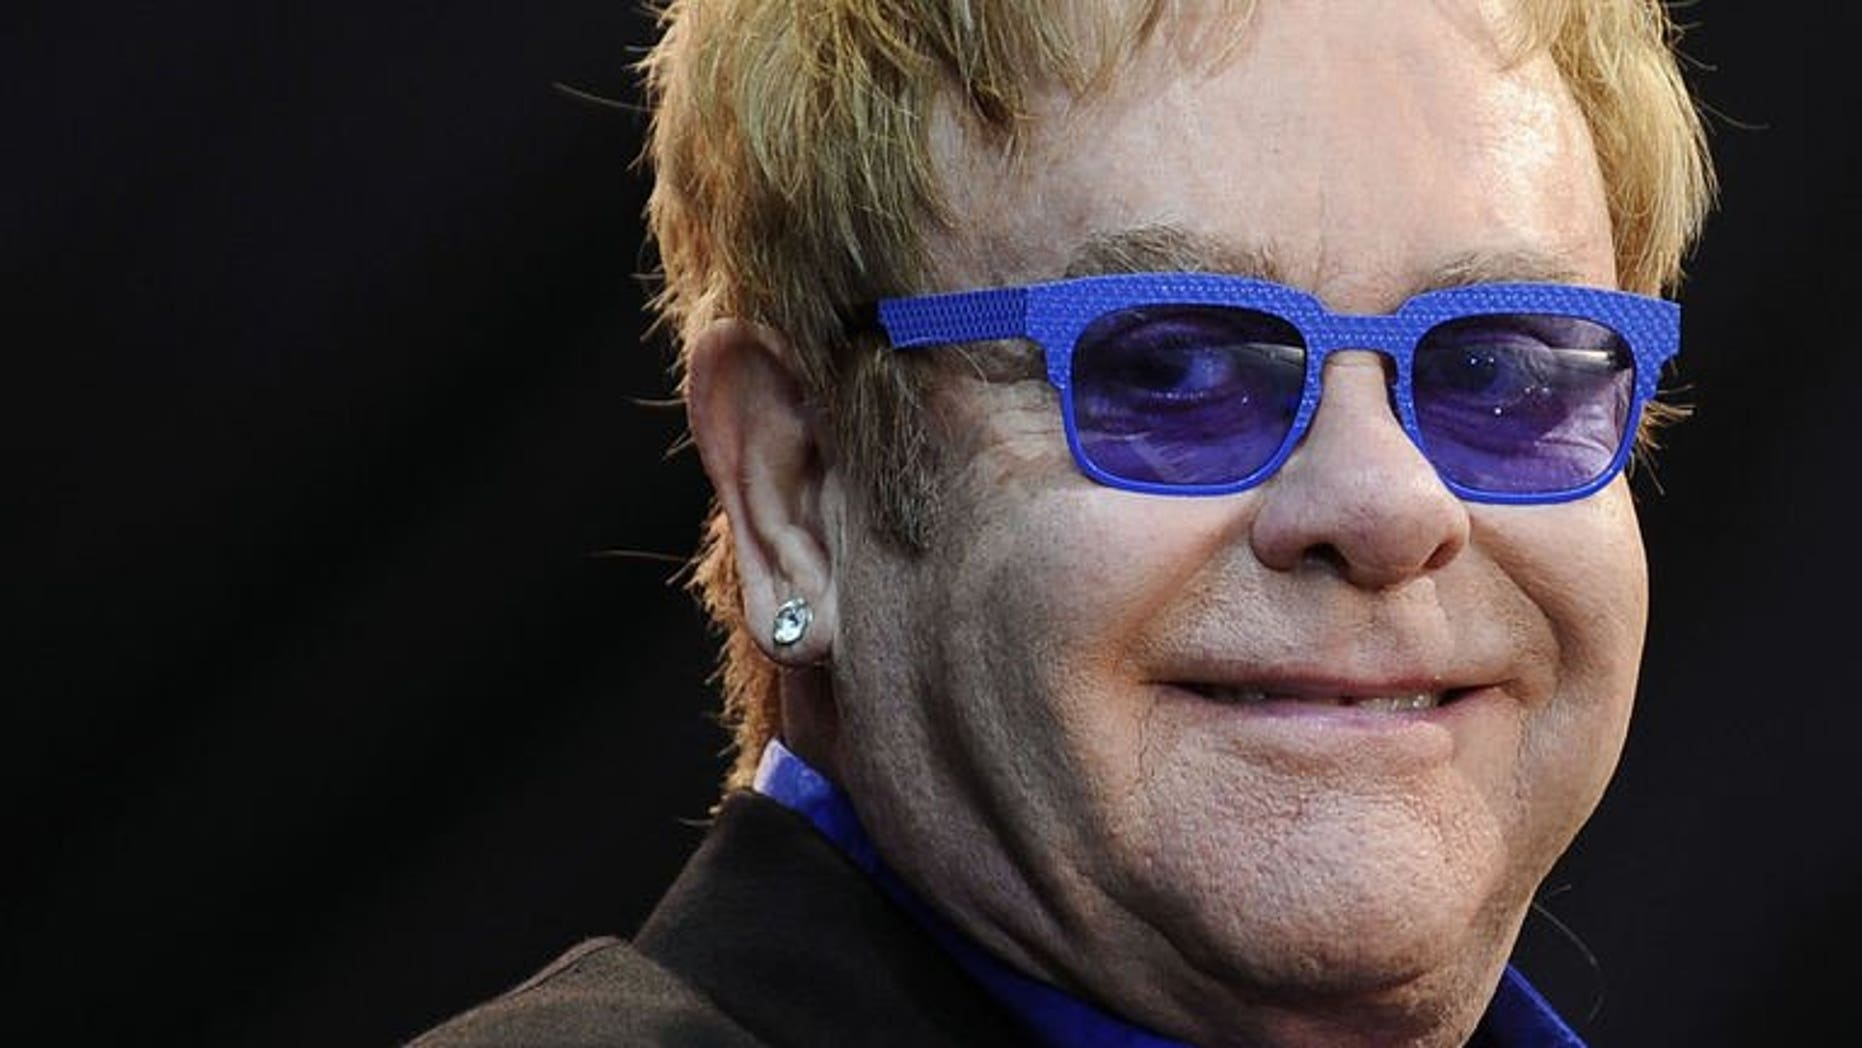 Elton John performs on stage during the Poupet festival on July 3, 2013 in Saint-Laurent-sur-Sevre, western France. John has cancelled the rest of his European tour after he was struck down with appendicitis, his spokesman said on Tuesday.